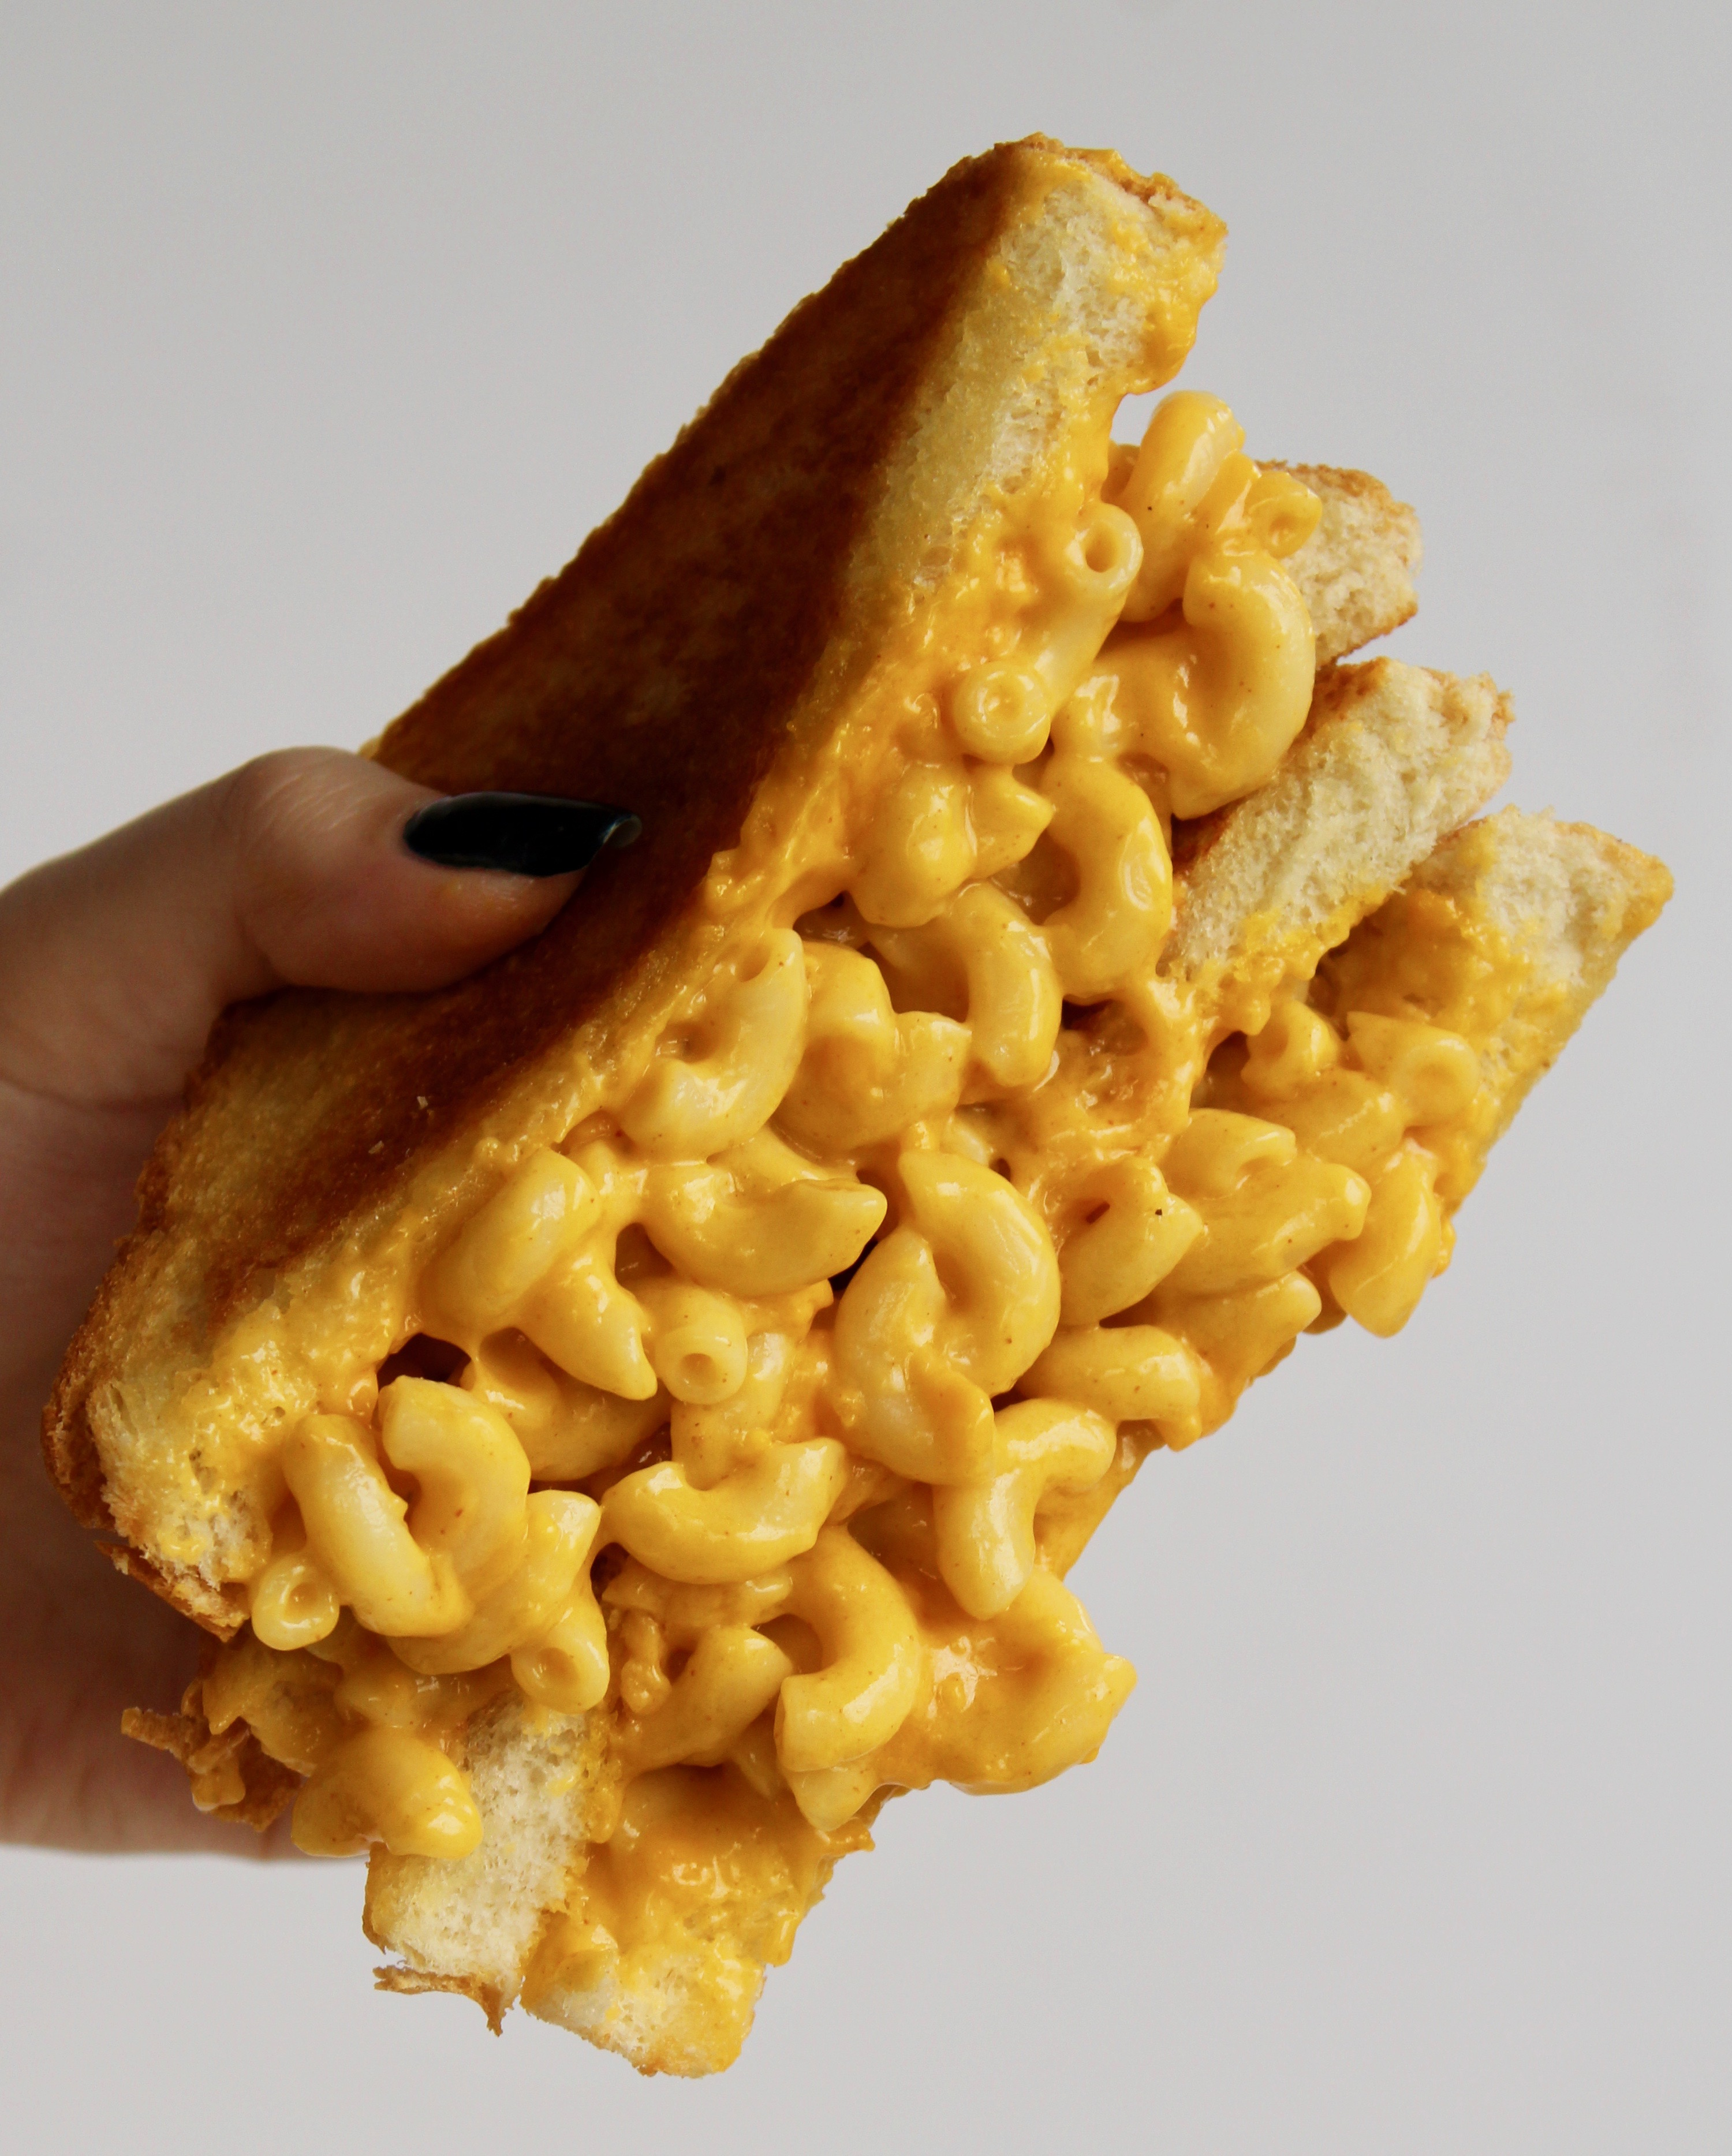 How To Cook Mac And Cheese On Grill